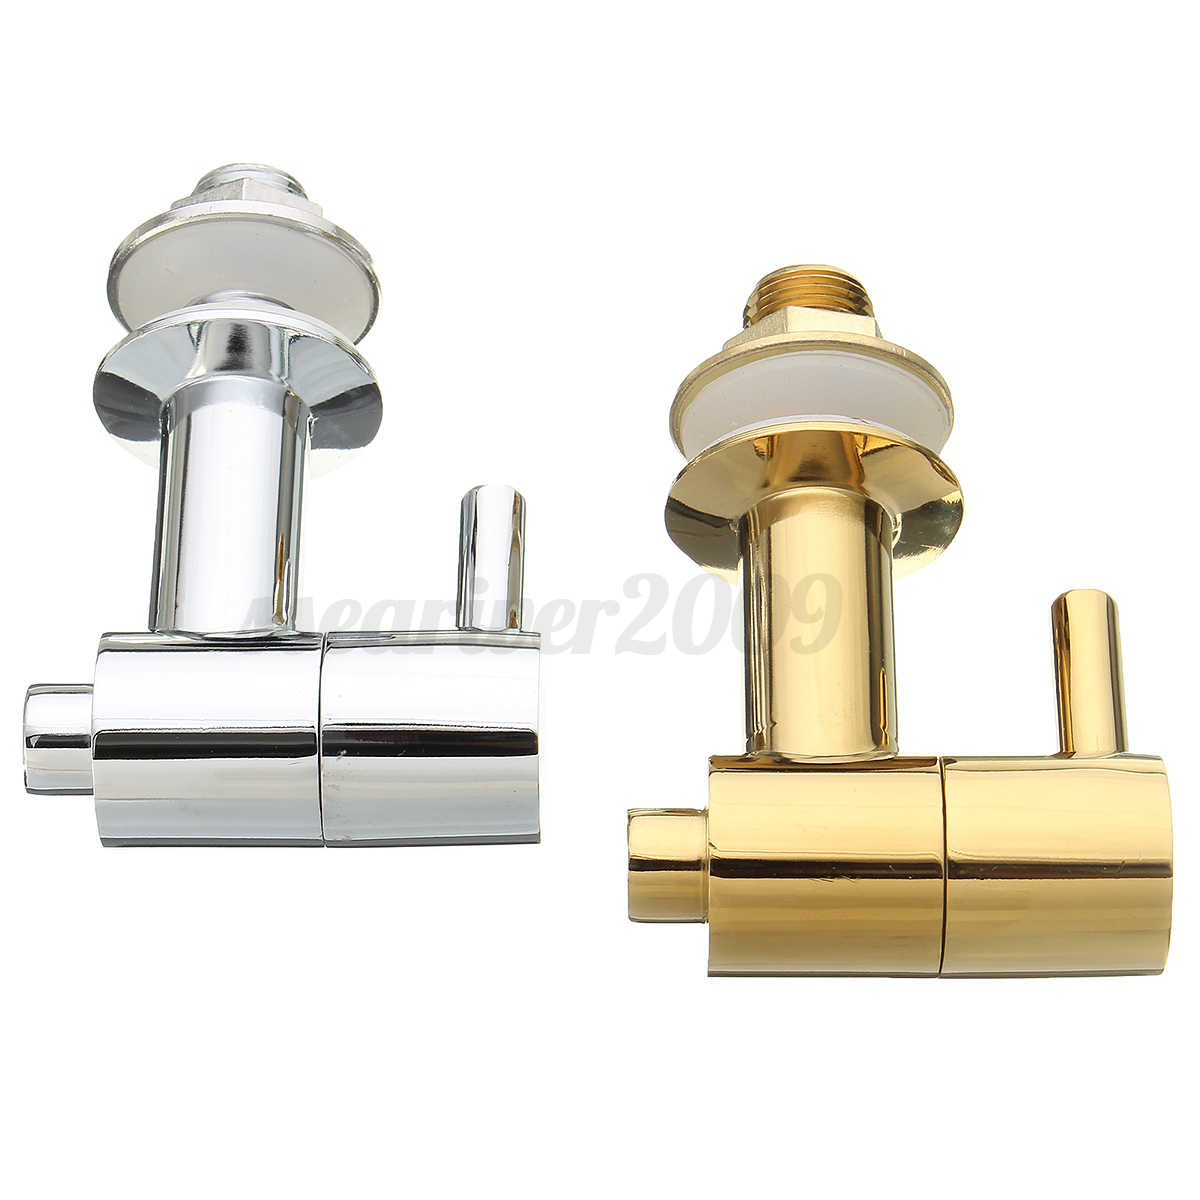 golden brass replacement spigot faucet for wine barrel beverage drink dispenser ebay. Black Bedroom Furniture Sets. Home Design Ideas